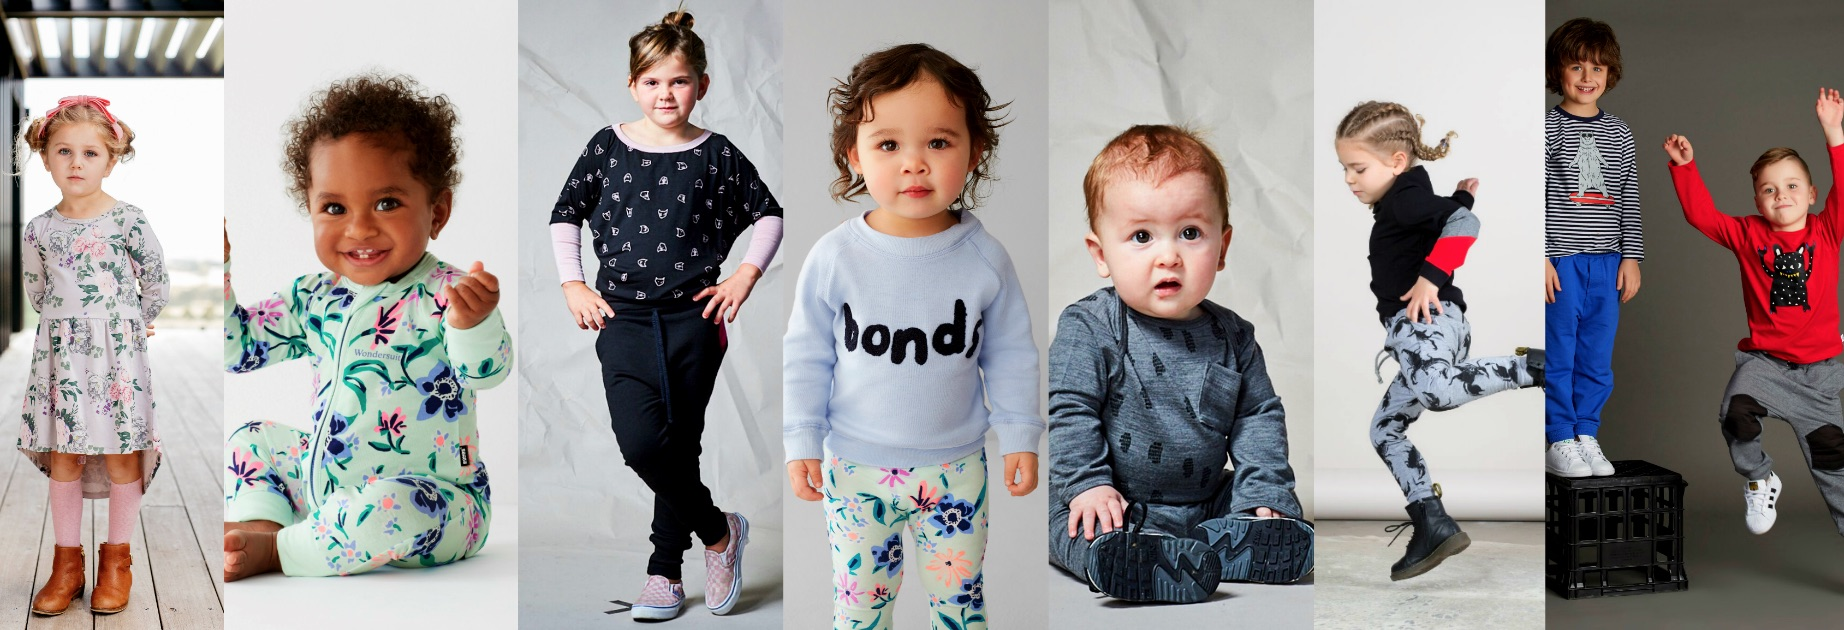 a627b3ad Specialists in Cotton & Merino Kids Clothing